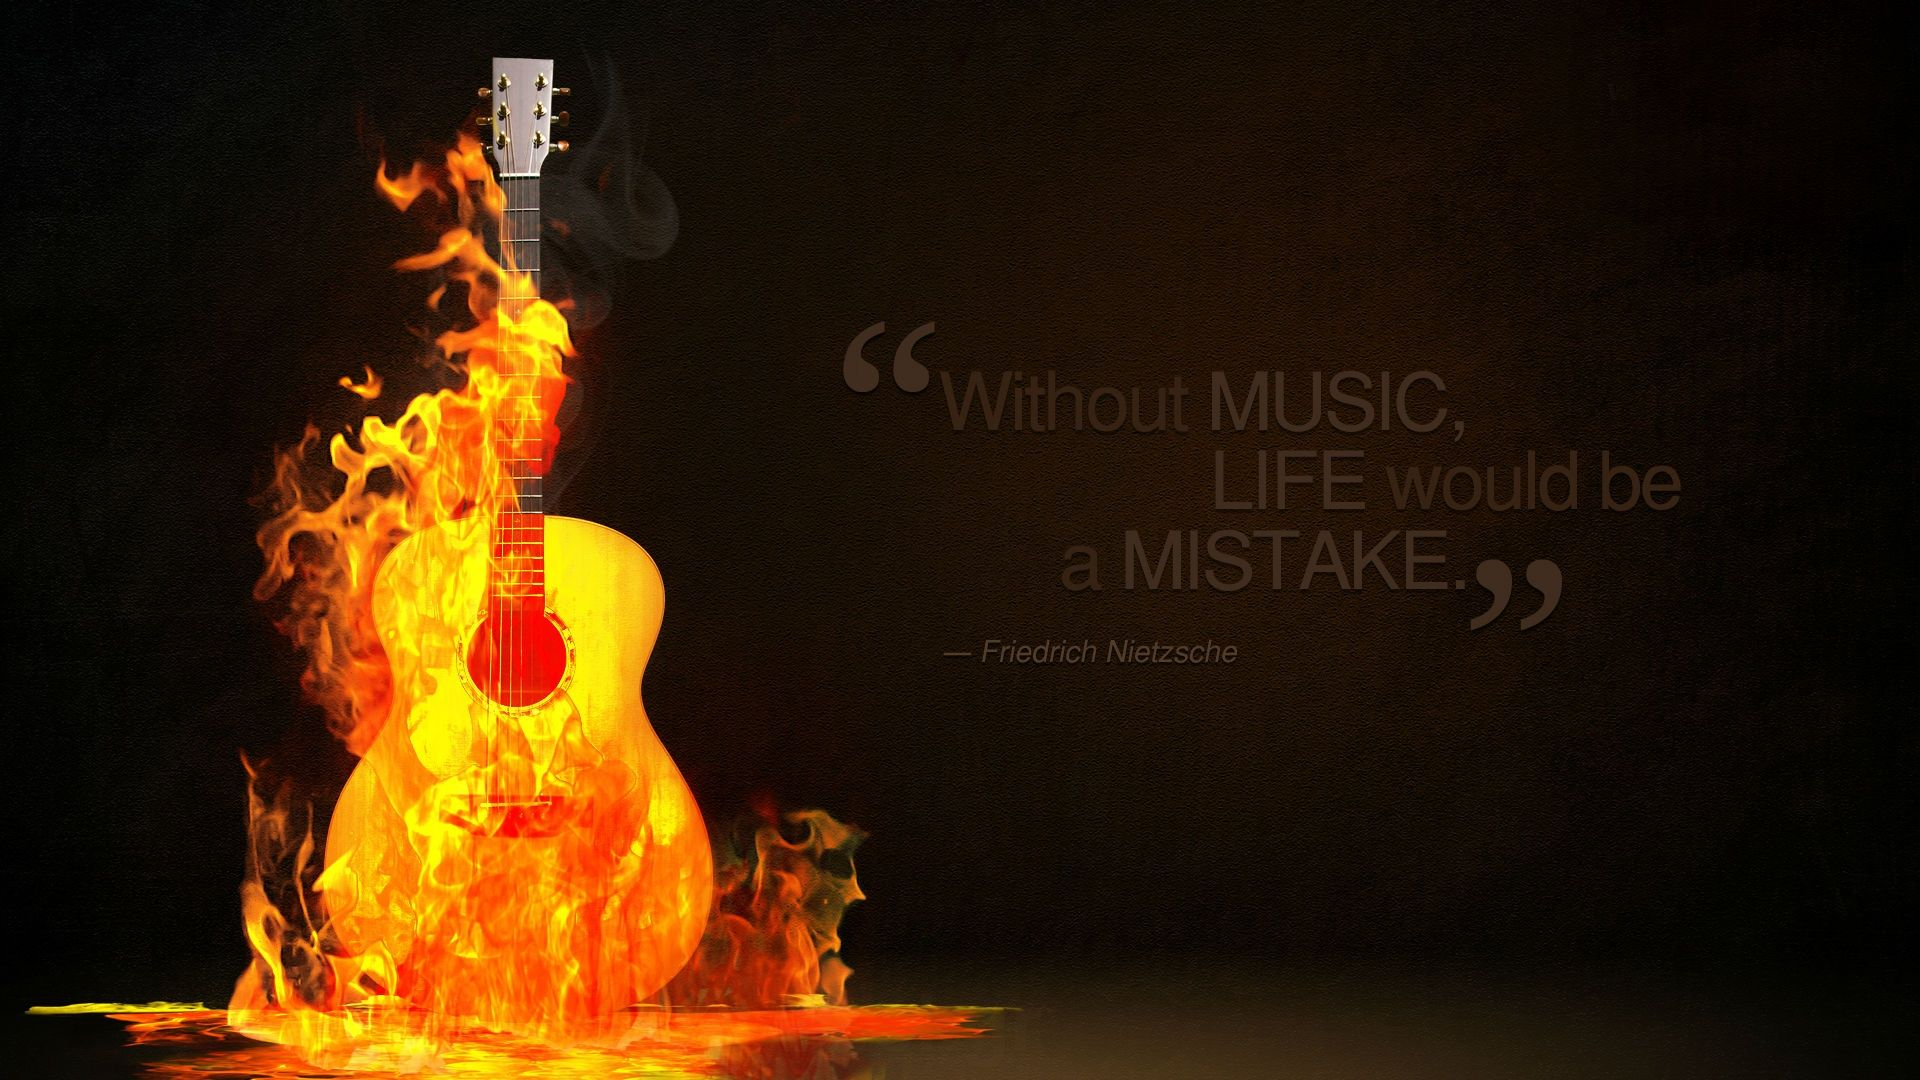 cool fire guitar wallpaperguitar hd wallpaperpiano hd wallpapers